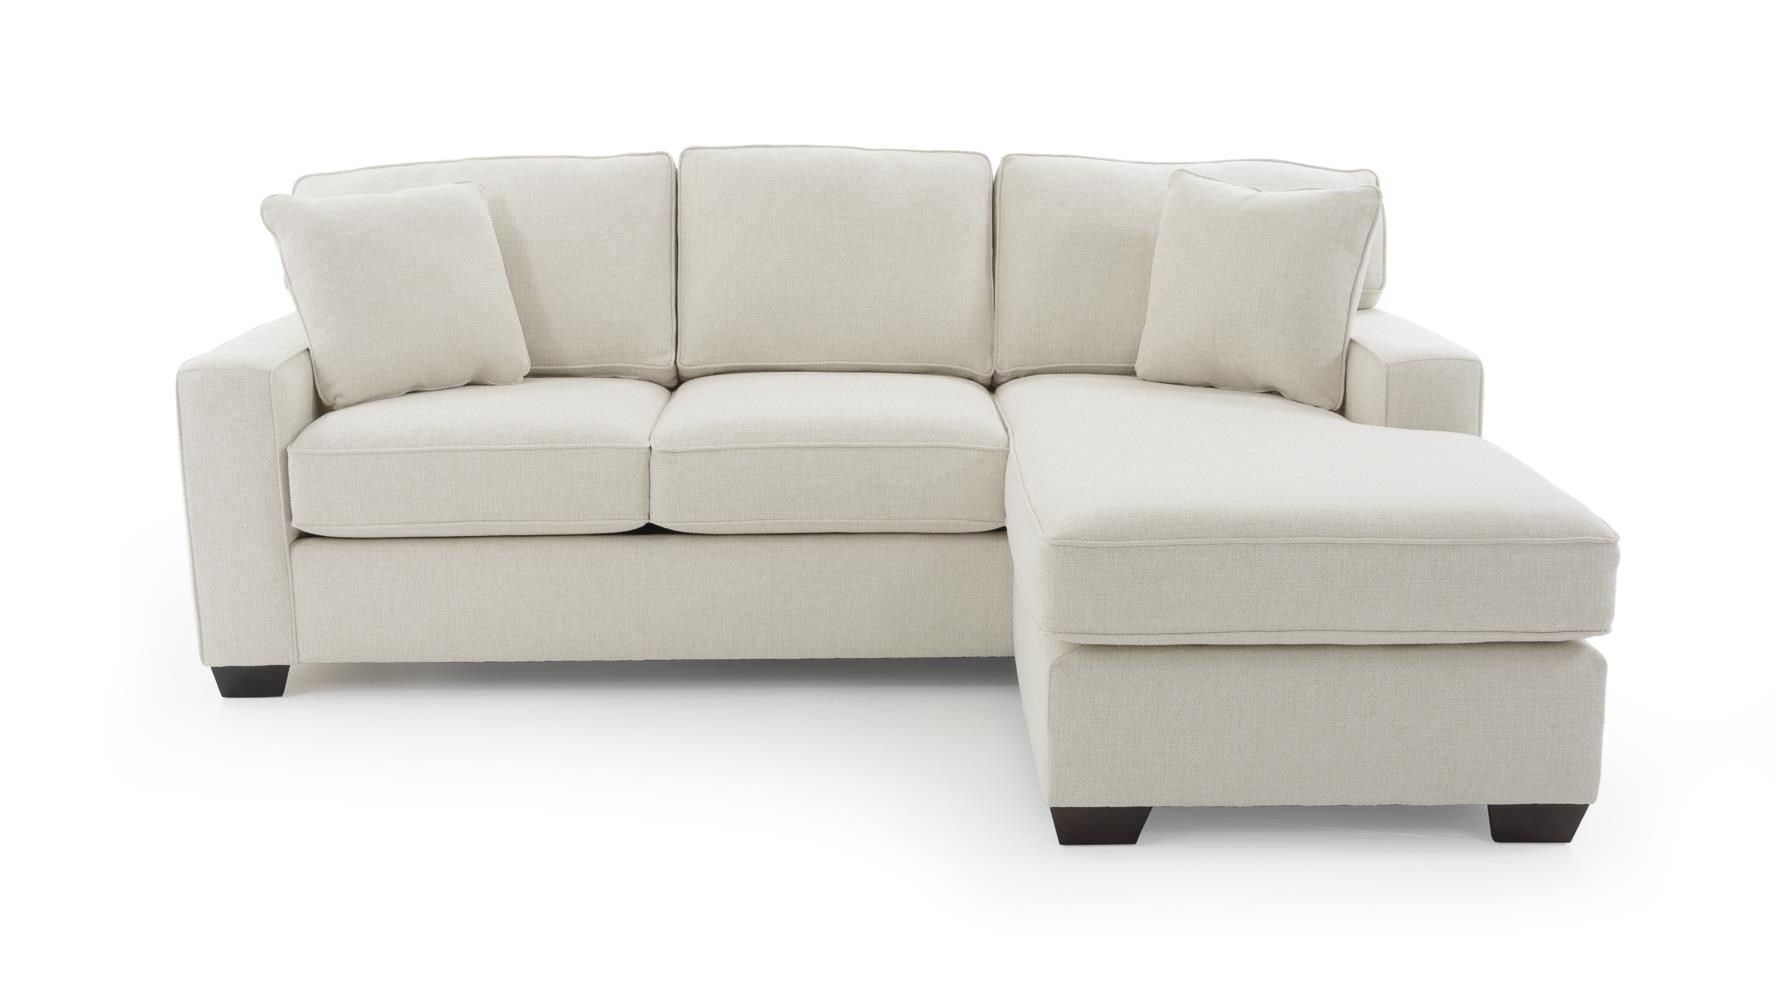 Bermuda Sleeper Sofa with Removable Chaise by Max Home at Baer's Furniture